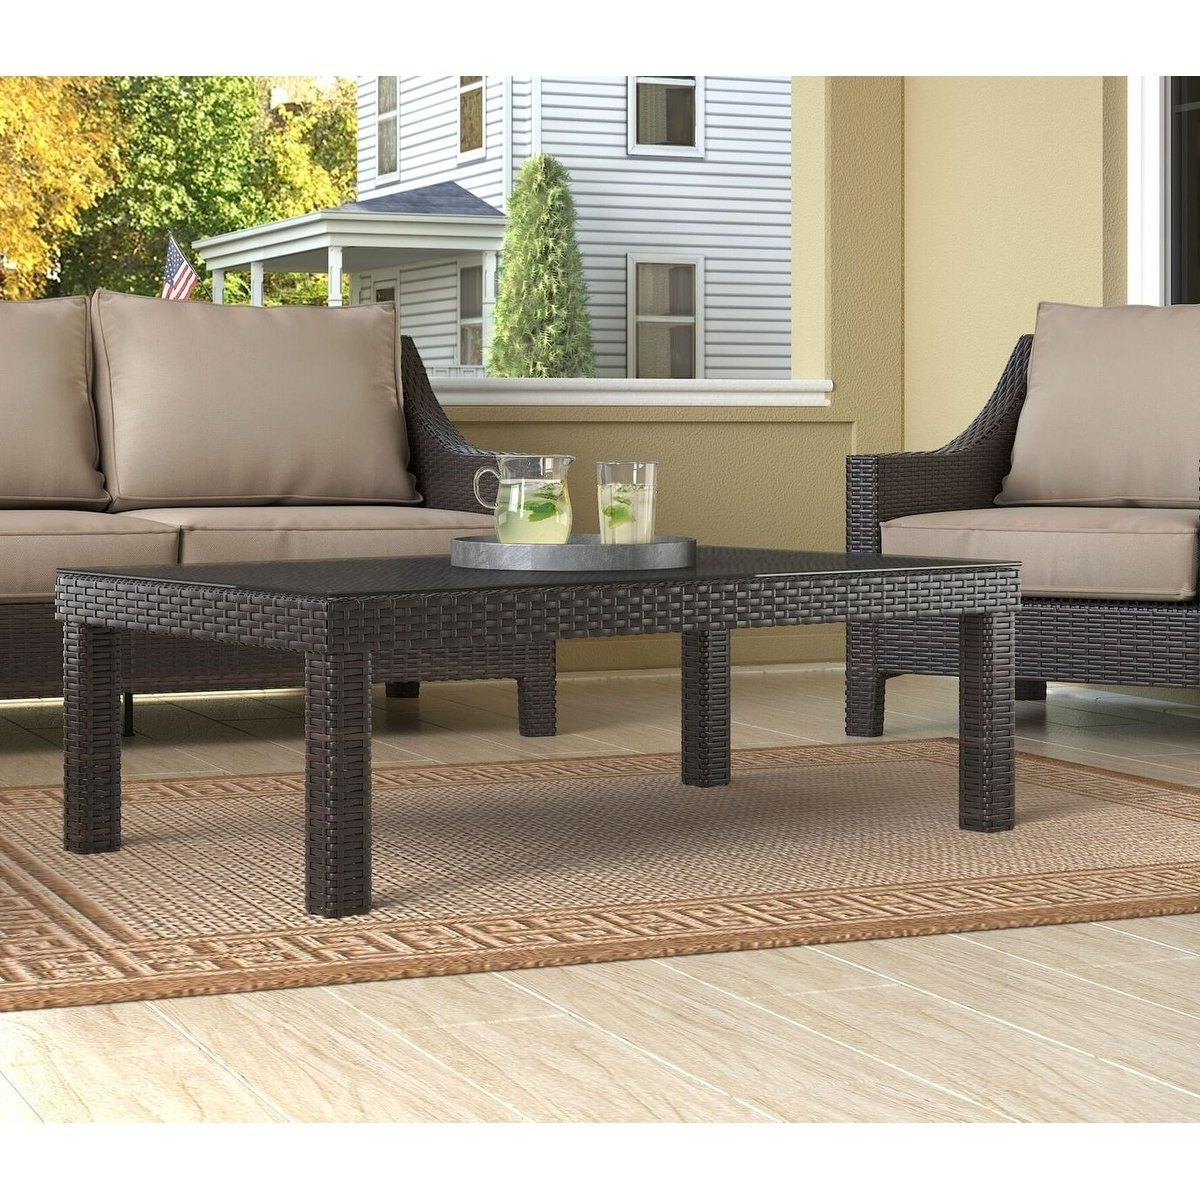 Well Liked Shop Serta Tahoe Outdoor Coffee Table, Terra Brown Wicker – Free With Regard To Tahoe Ii Cocktail Tables (View 14 of 20)